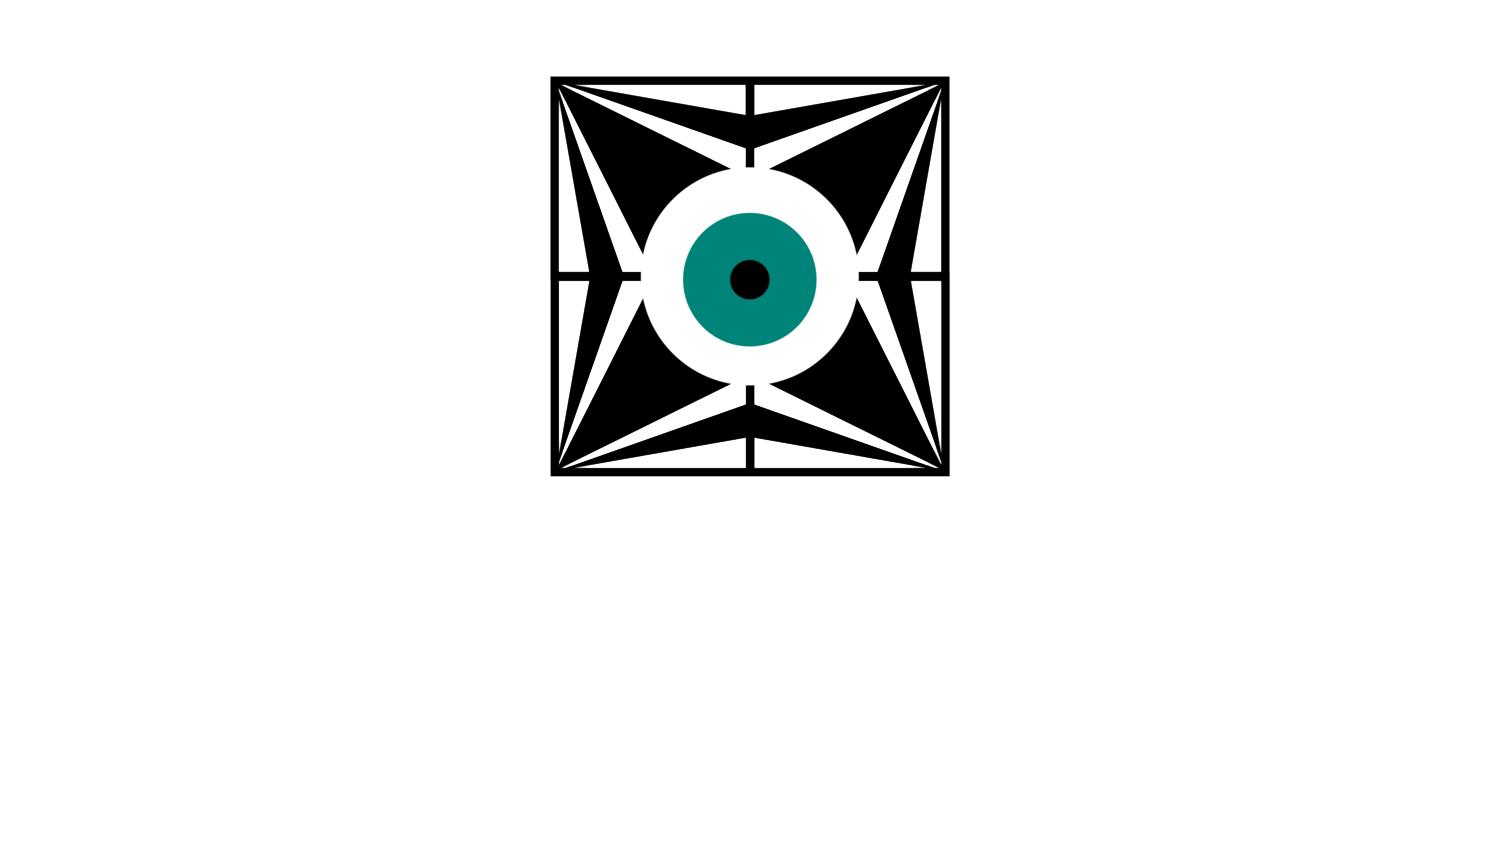 Phantoms of Kansas City